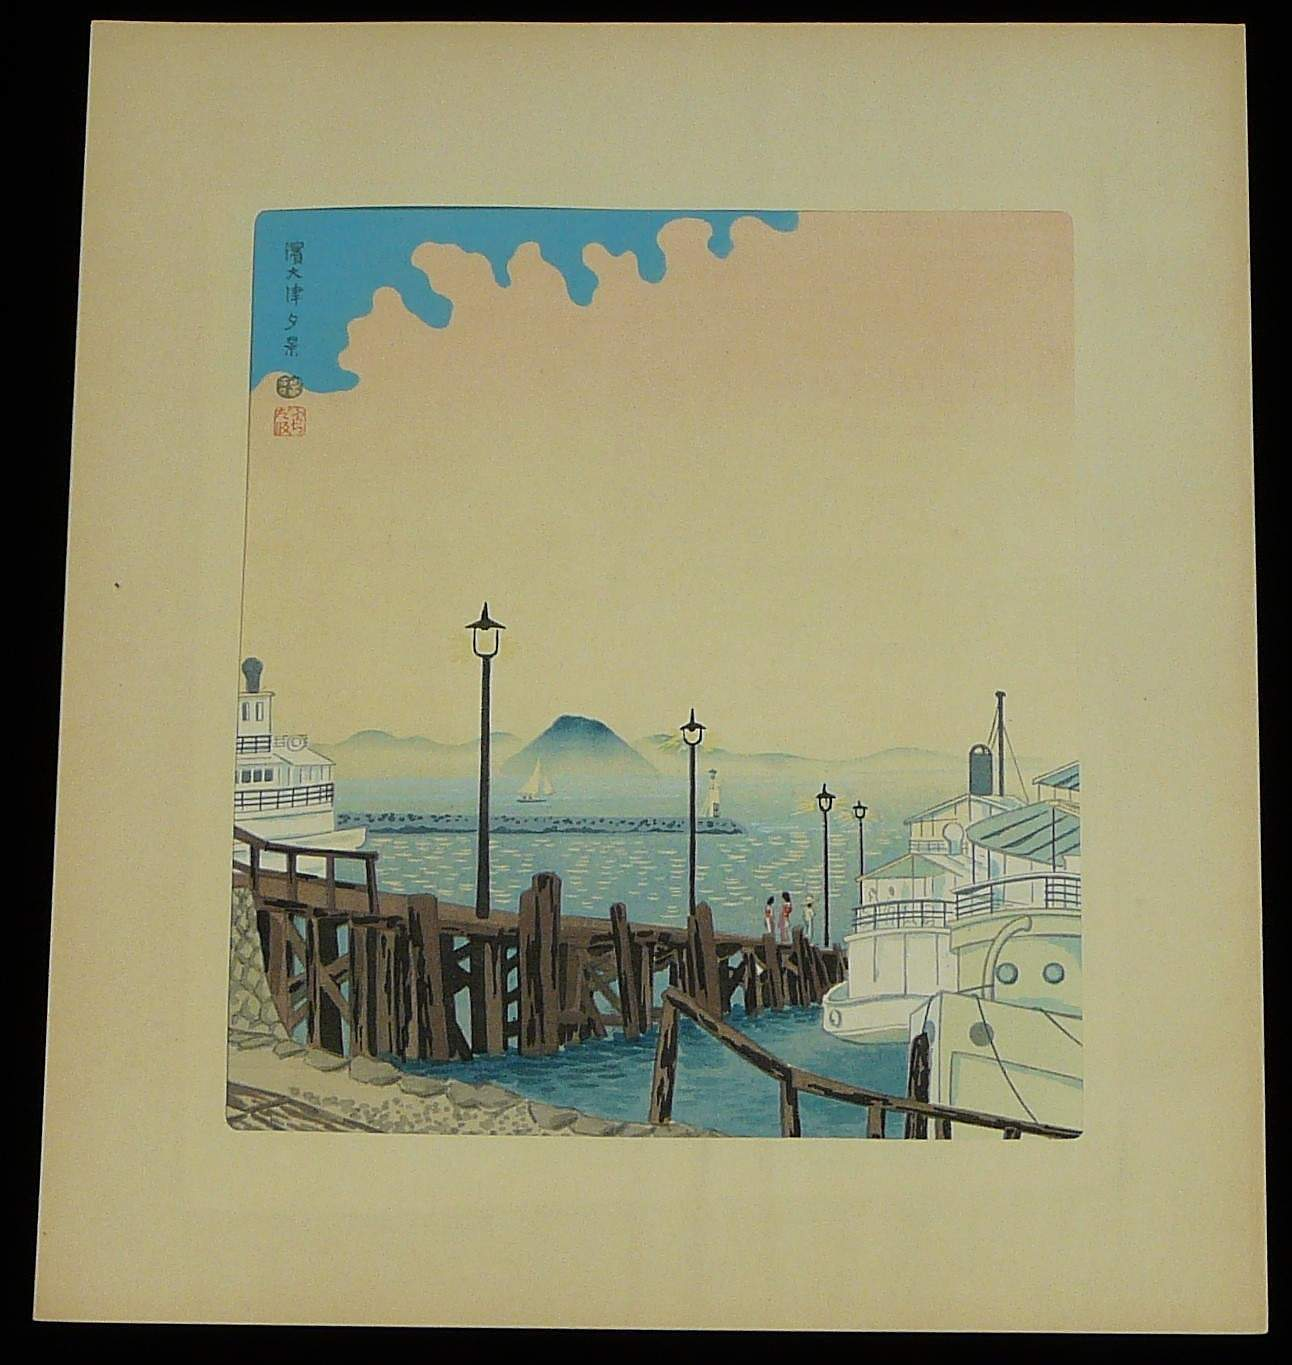 2. EVENING SCENE OF HAMA-OTSU